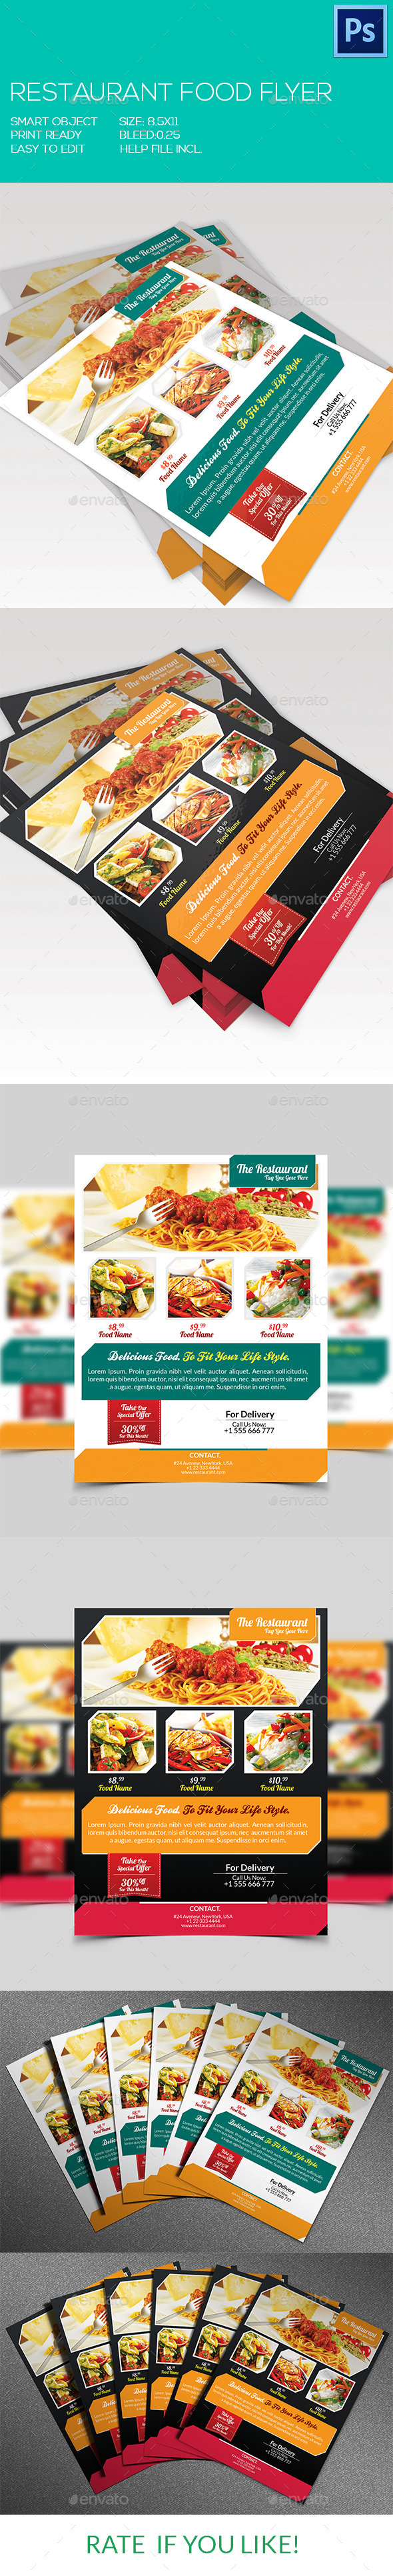 Restaurant Food Flyer - Restaurant Flyers